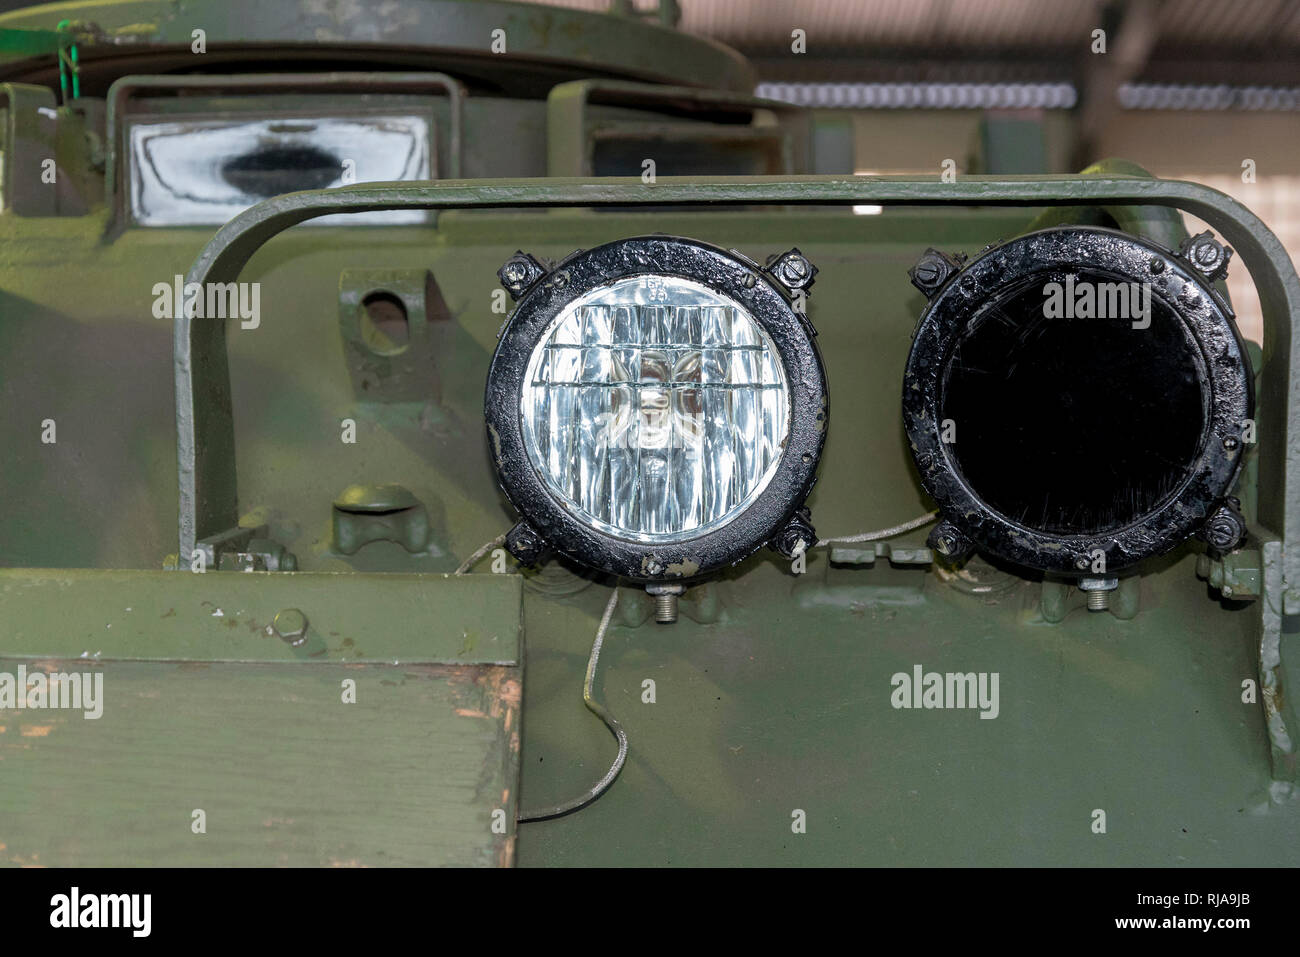 Round lantern in the armored vehicle of Russian military